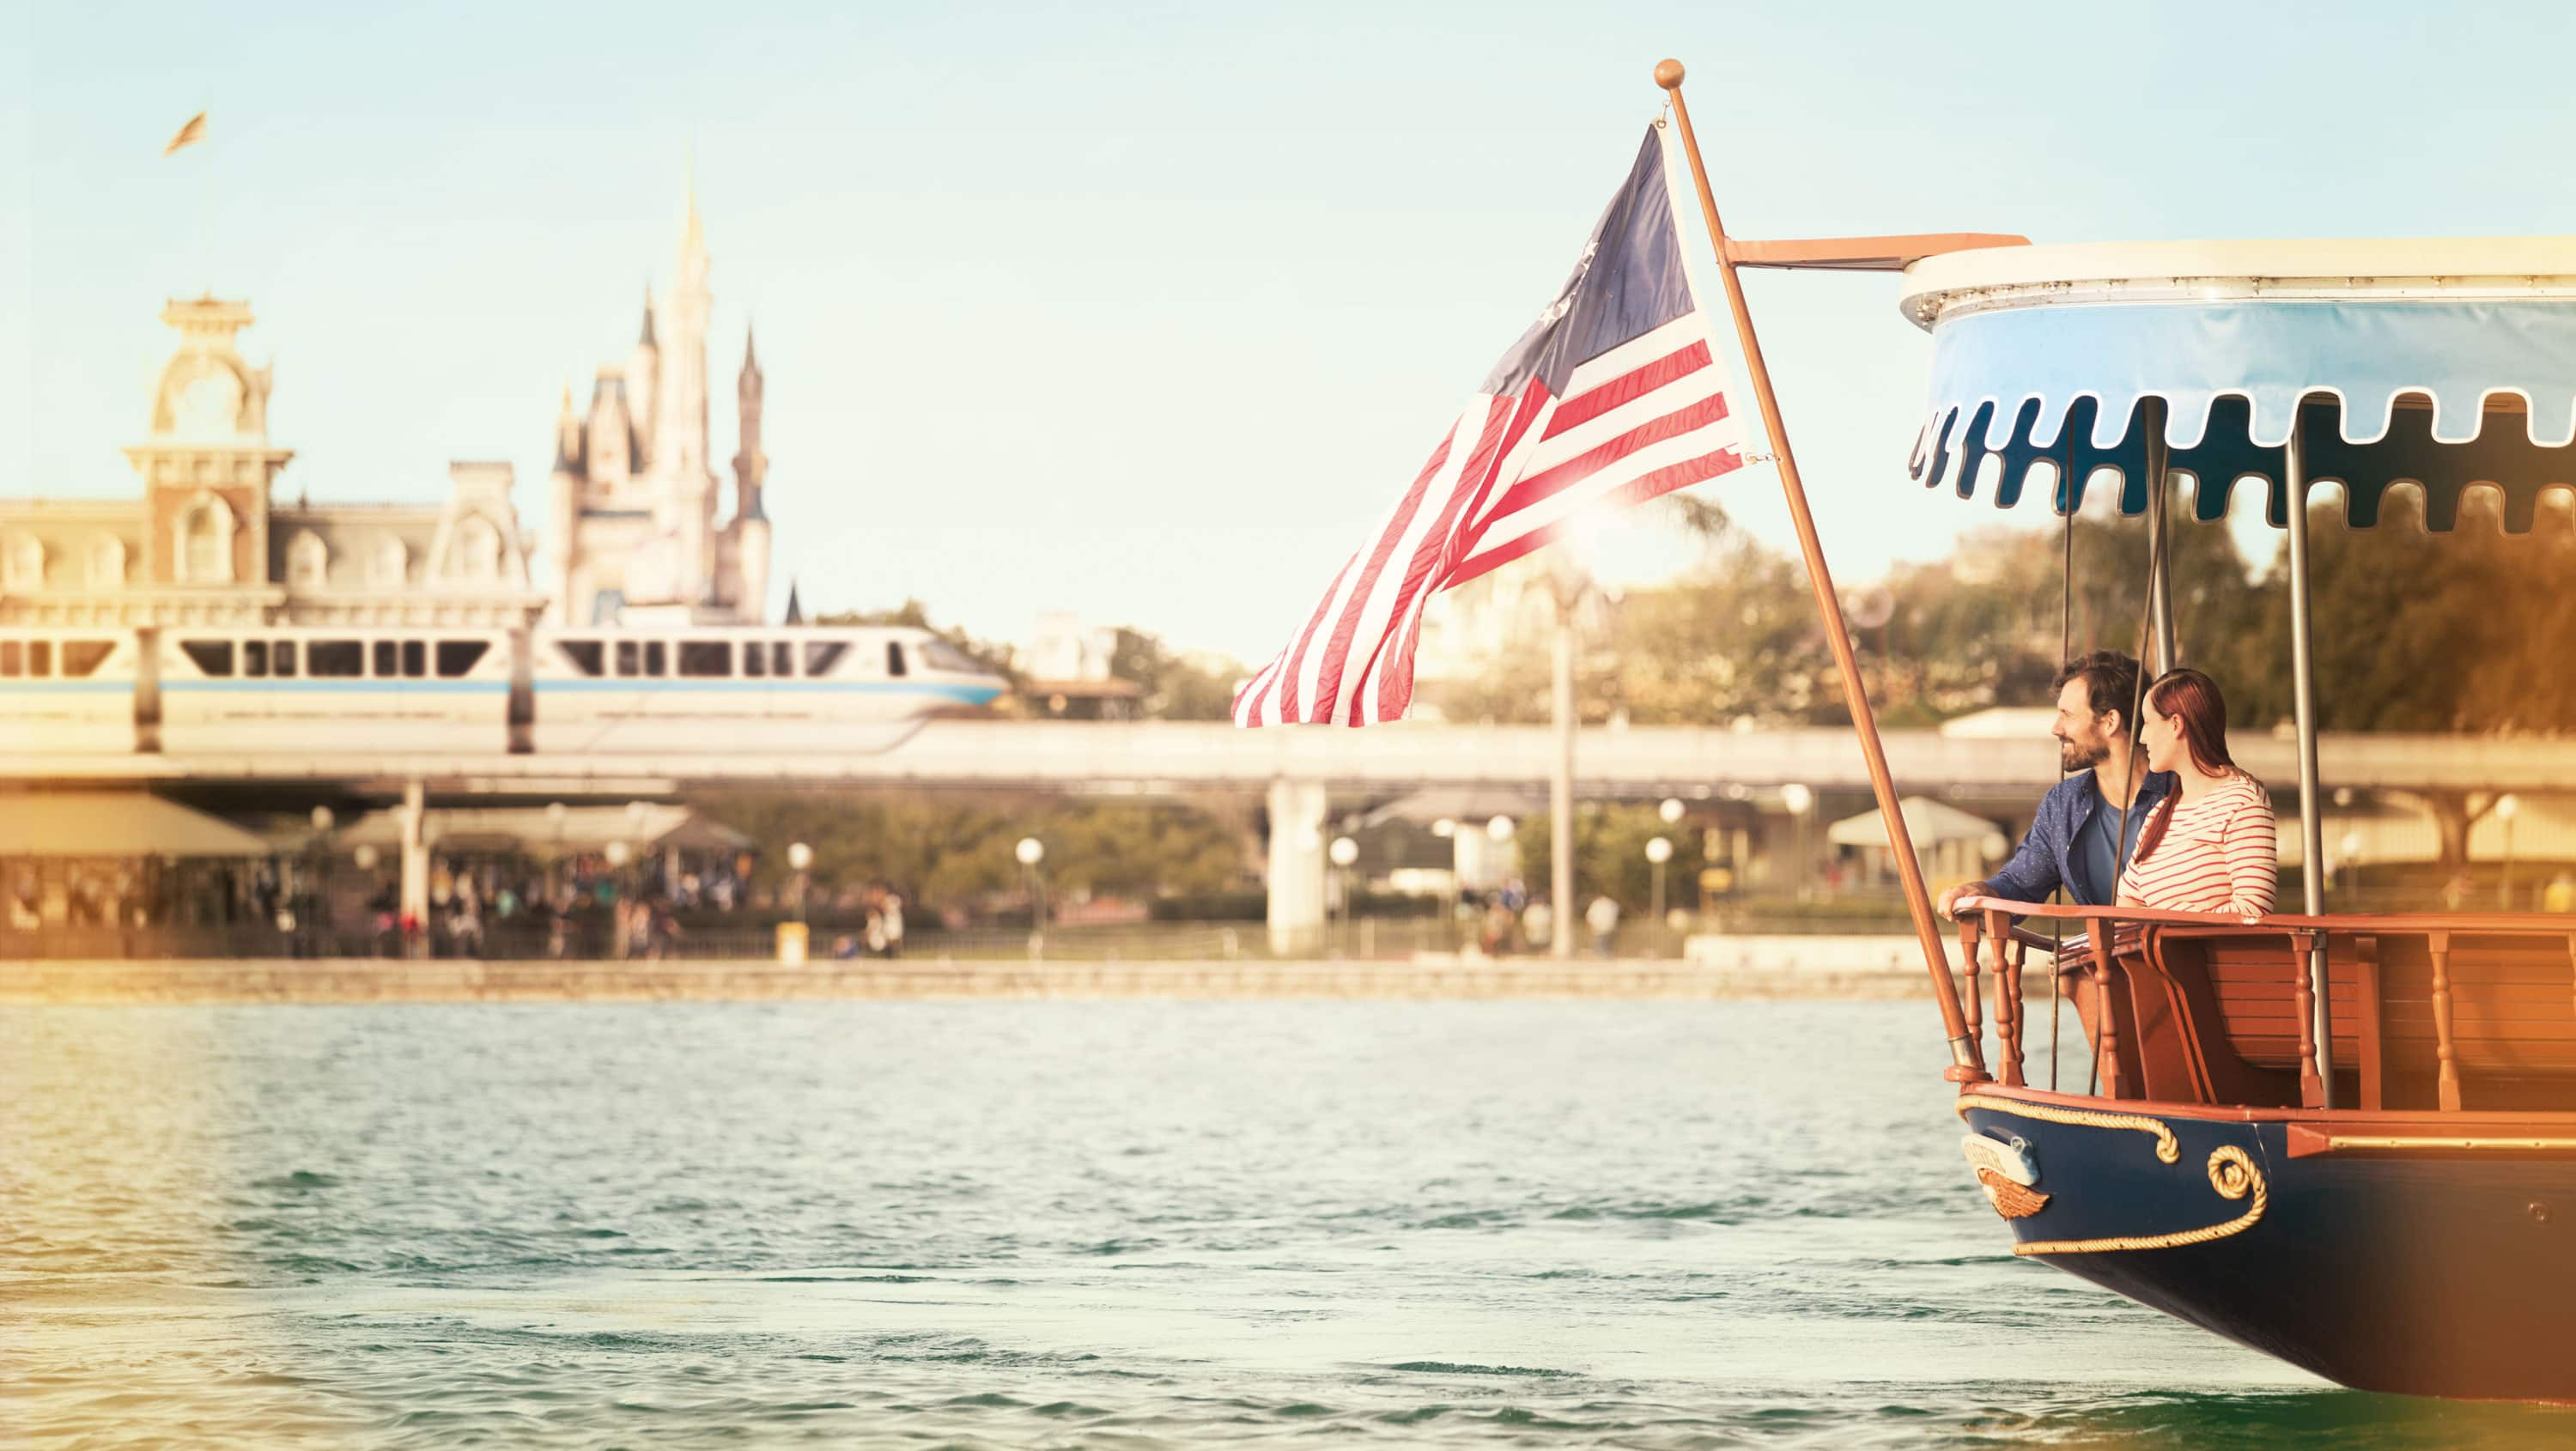 A couple glides past Magic Kingdom park aboard an American flag bearing ferryboat.